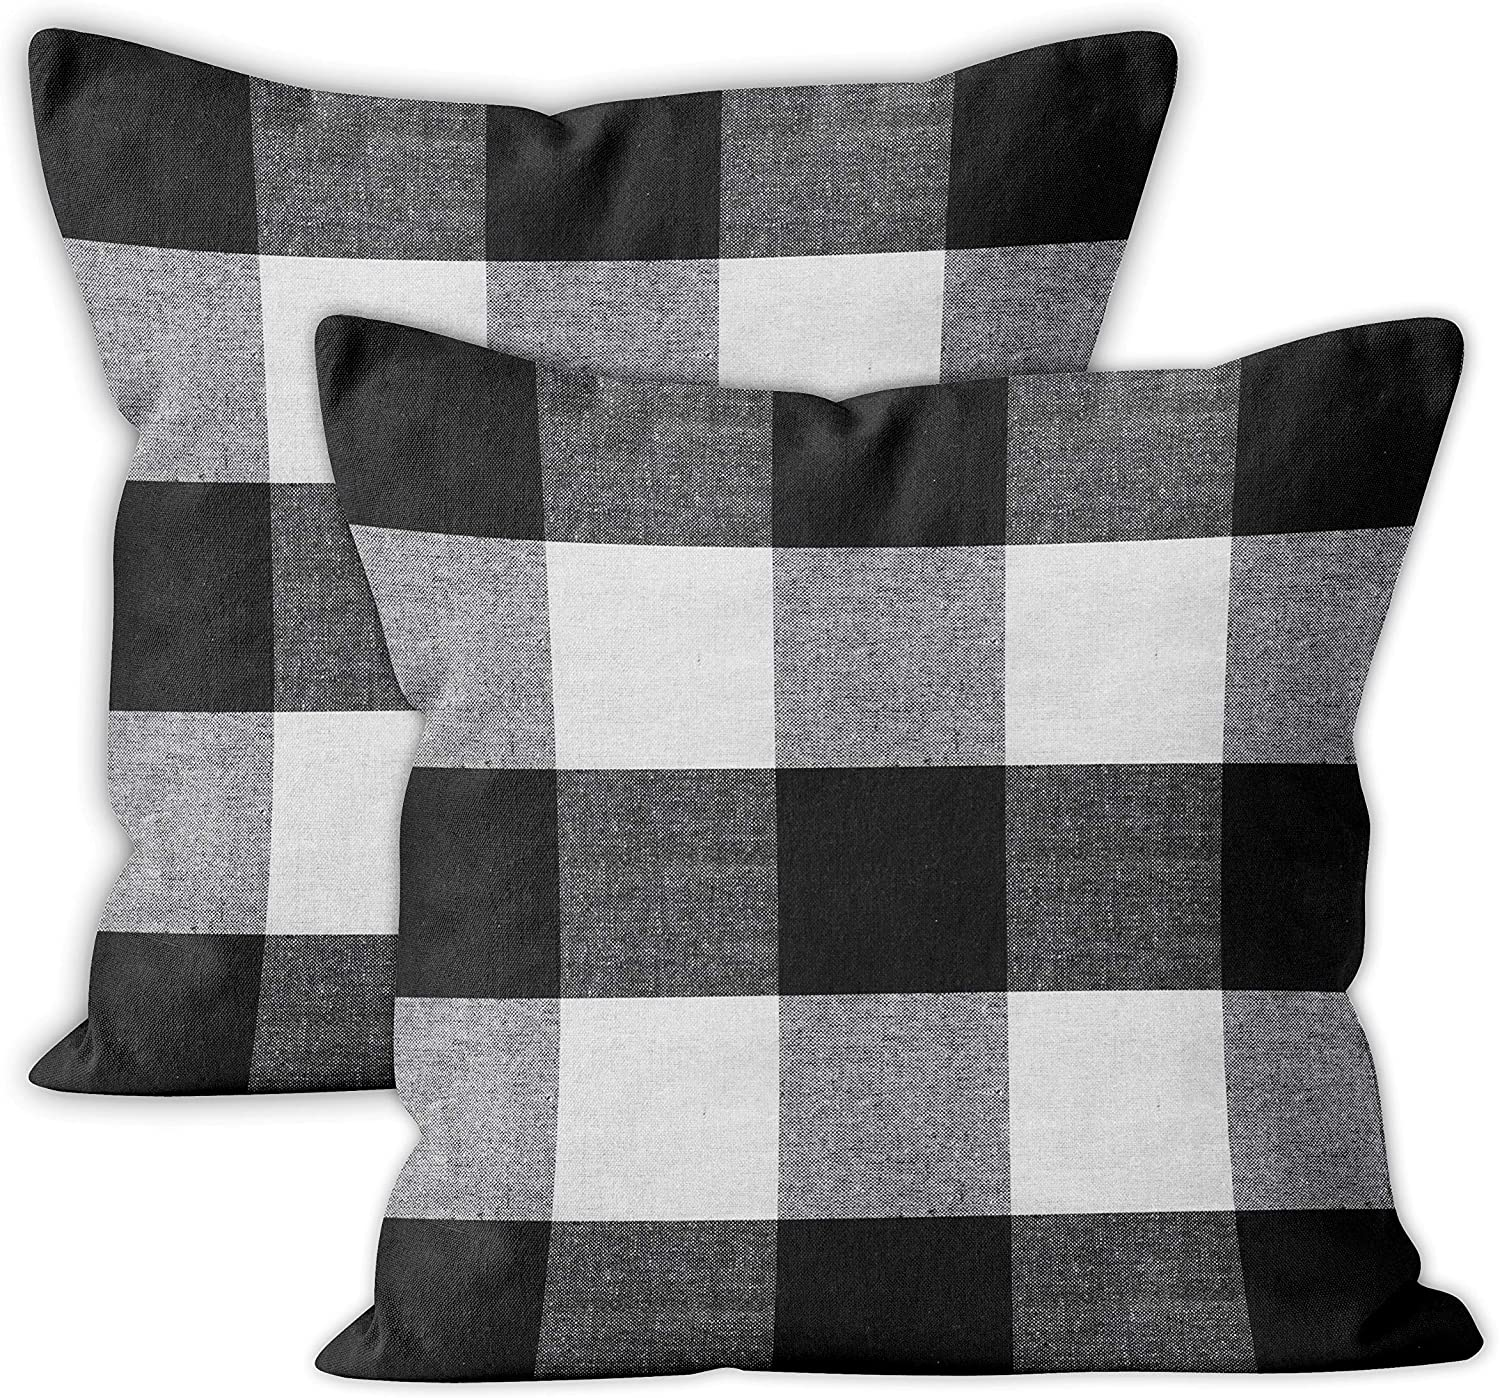 Encasa Homes Farmhouse Throw Pillow Cover 2pc Set - Buffalo Black Checks - 20 x 20 inch Recycled Cotton Square Accent Decorative Cushion Cover for Couch Sofa Chair Bed & Home